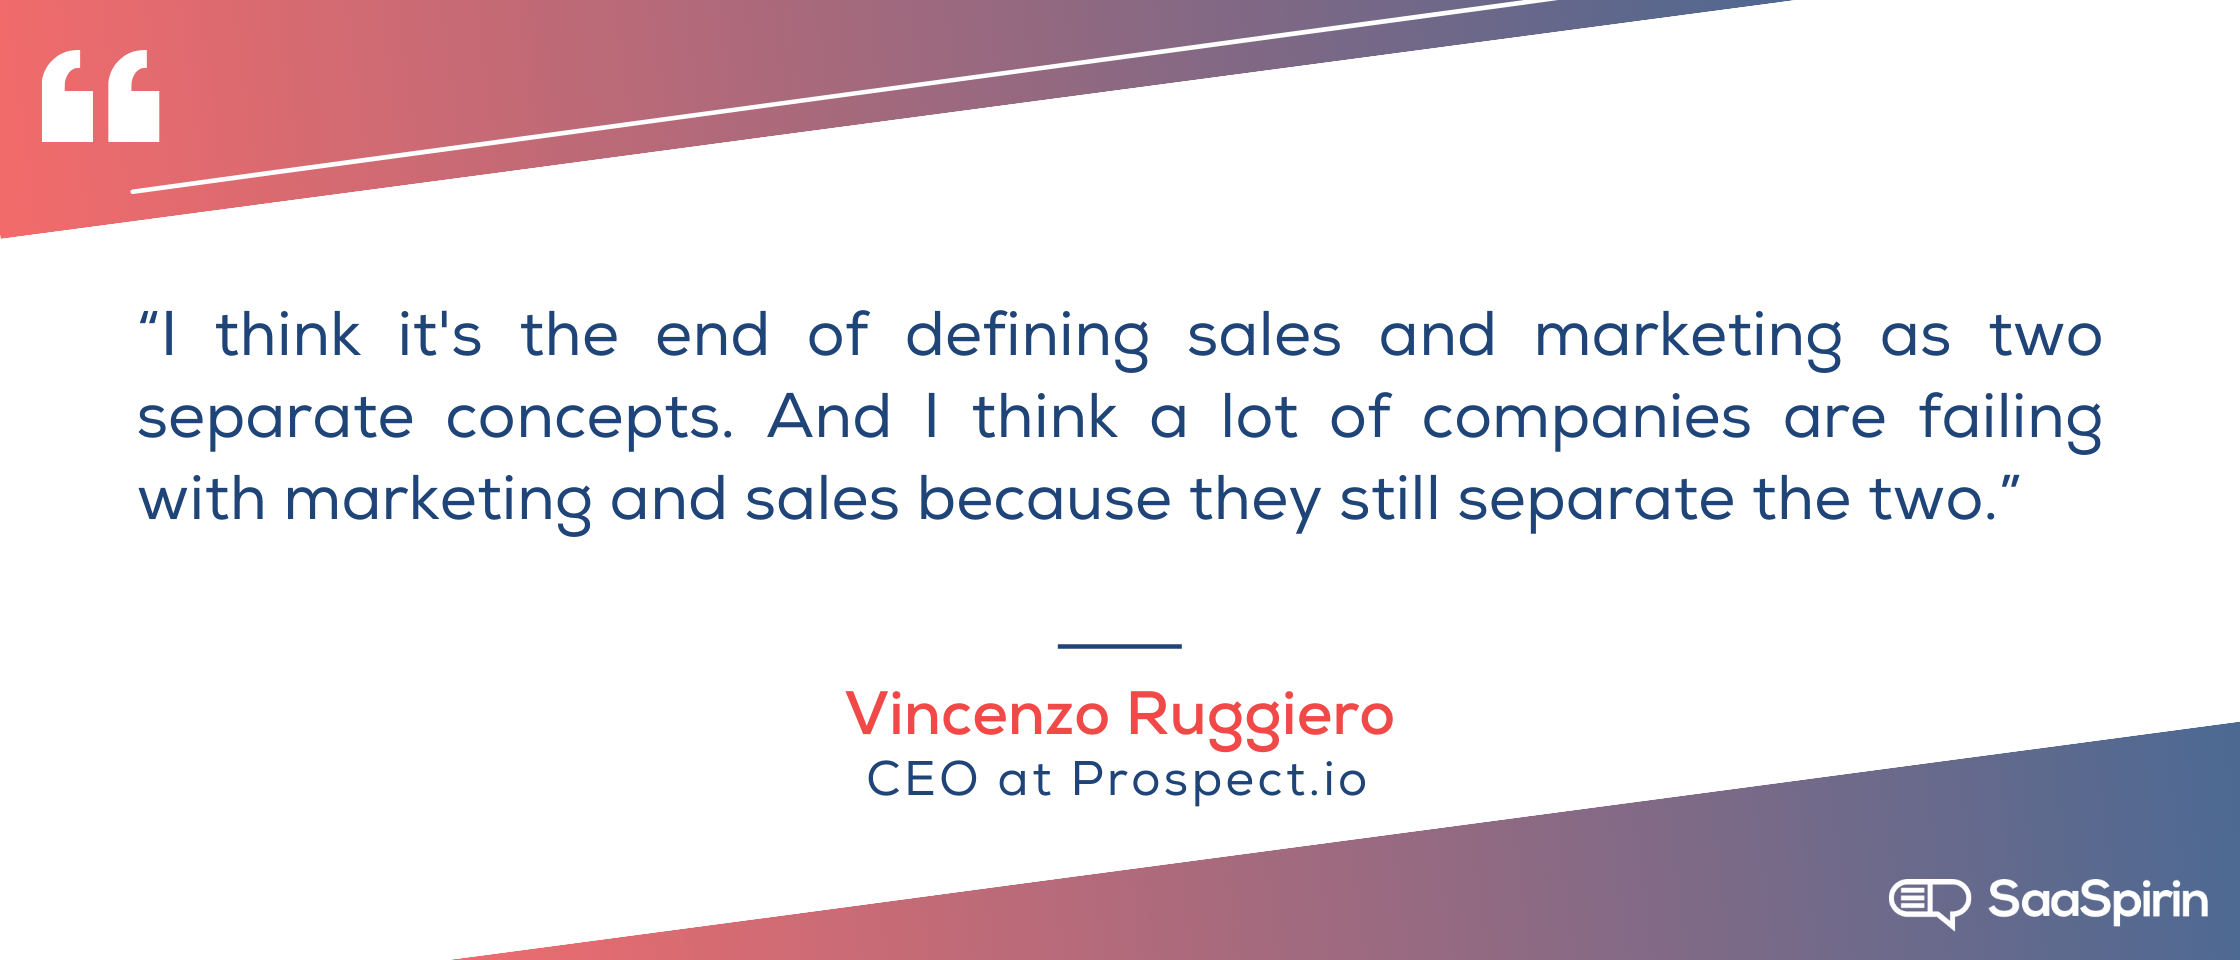 I-think-its-the-end-of-defining-sales-and-marketing-as-two-separate-concepts-And-I-think-a-lot-of-companies-are-failing-with-marketing-and-sales-because-they-still-separate-the two.png